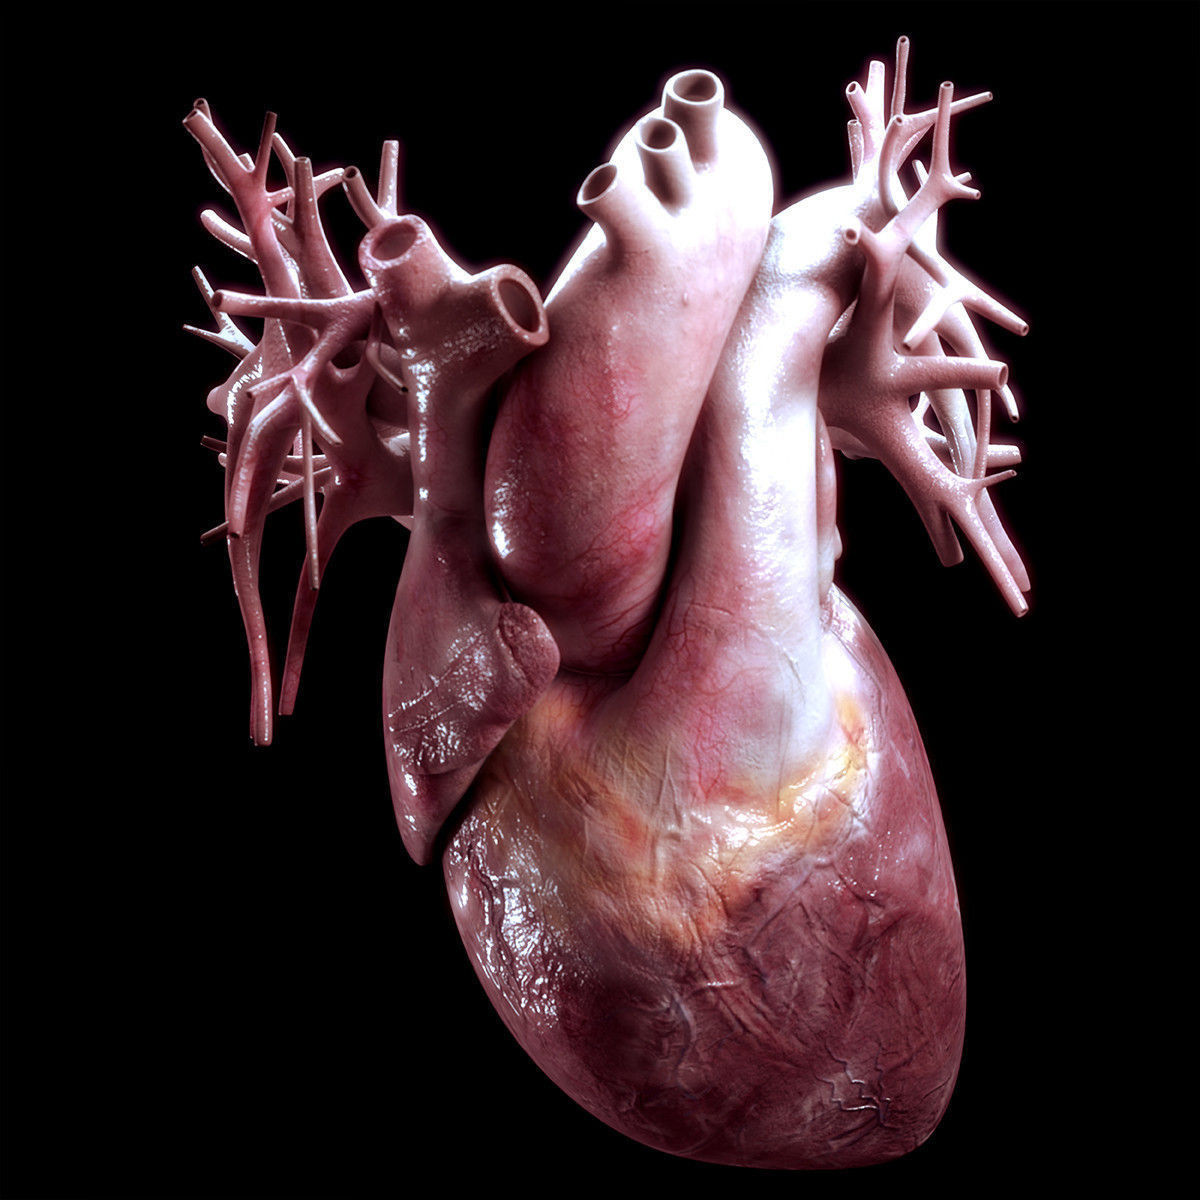 vein Human Heart High Quality 3D model | CGTrader